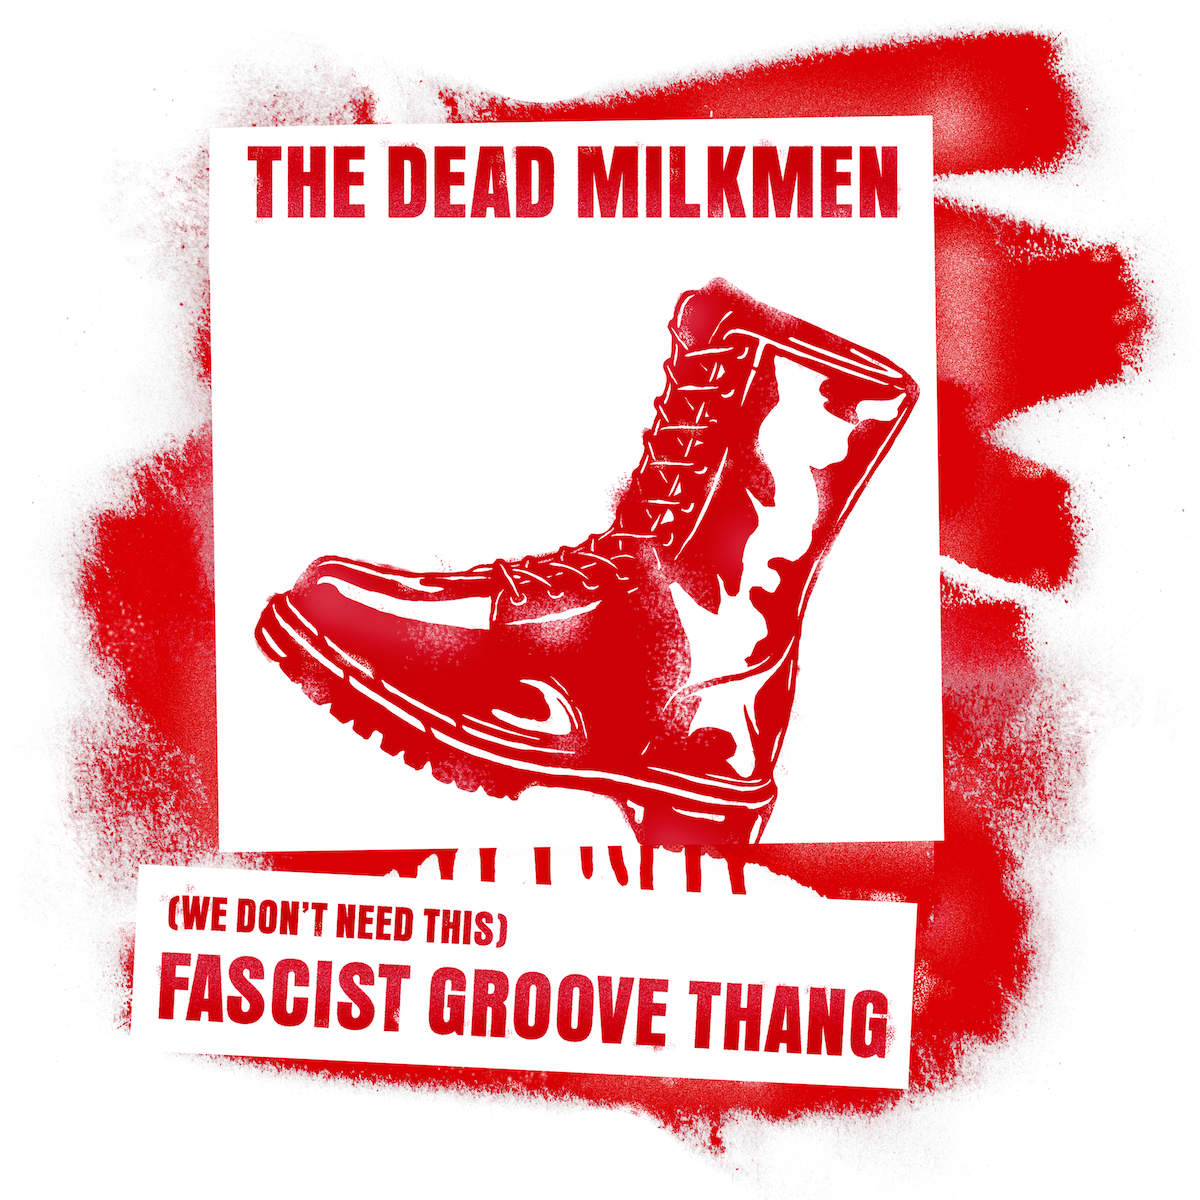 The Dead Milkmen Announce 7 Inch Single Prep New Full